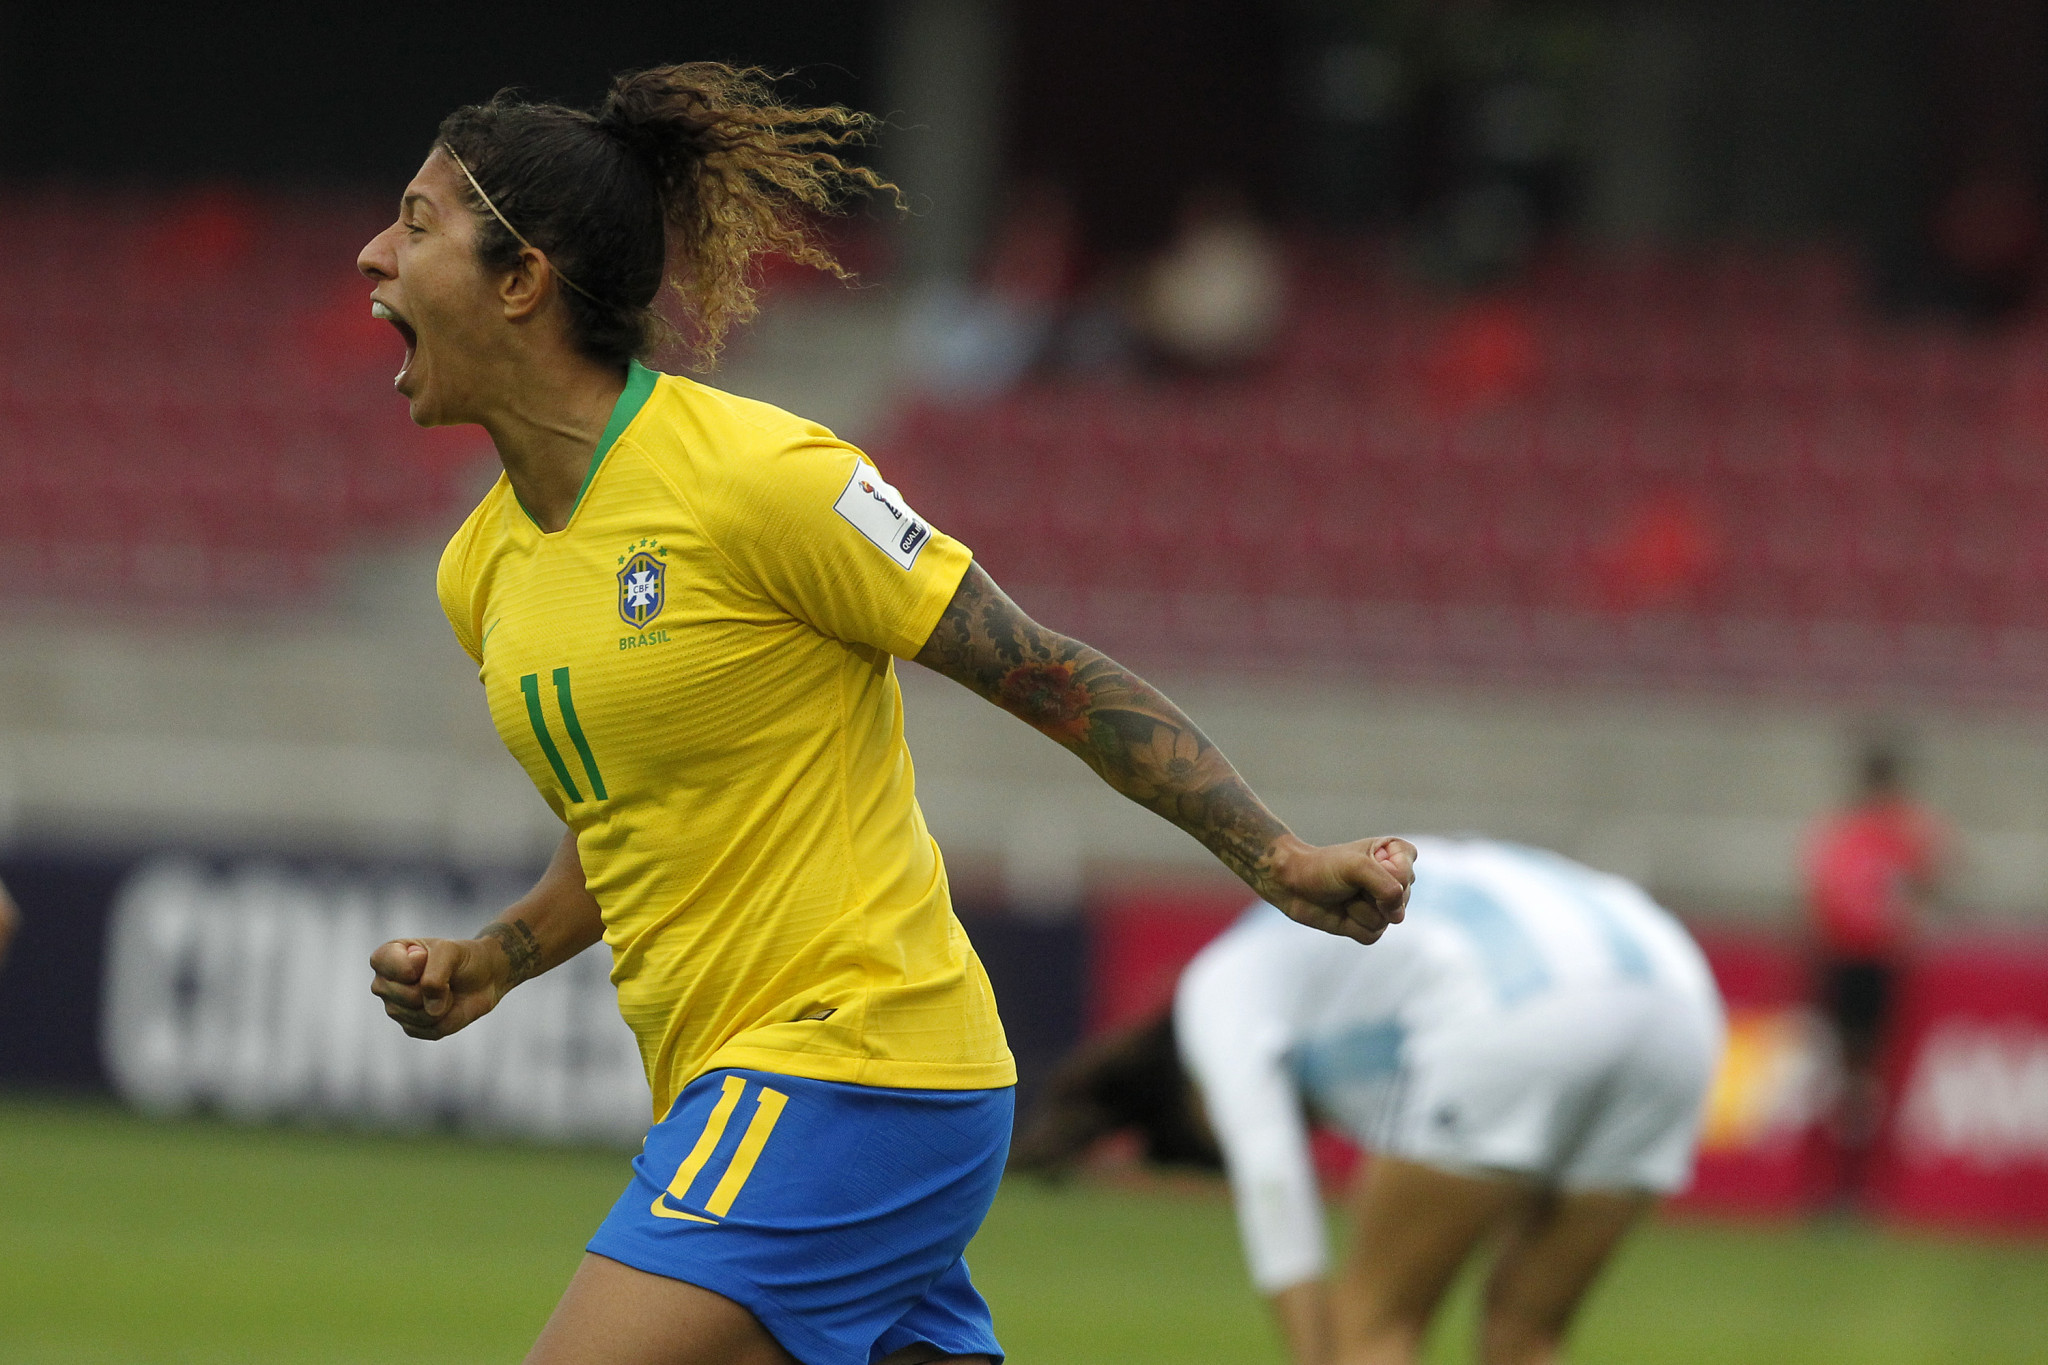 Cristiane scored Brazil s first goal in their 3-0 victory over Argentina to  qualify for 8fa2df75da7c0